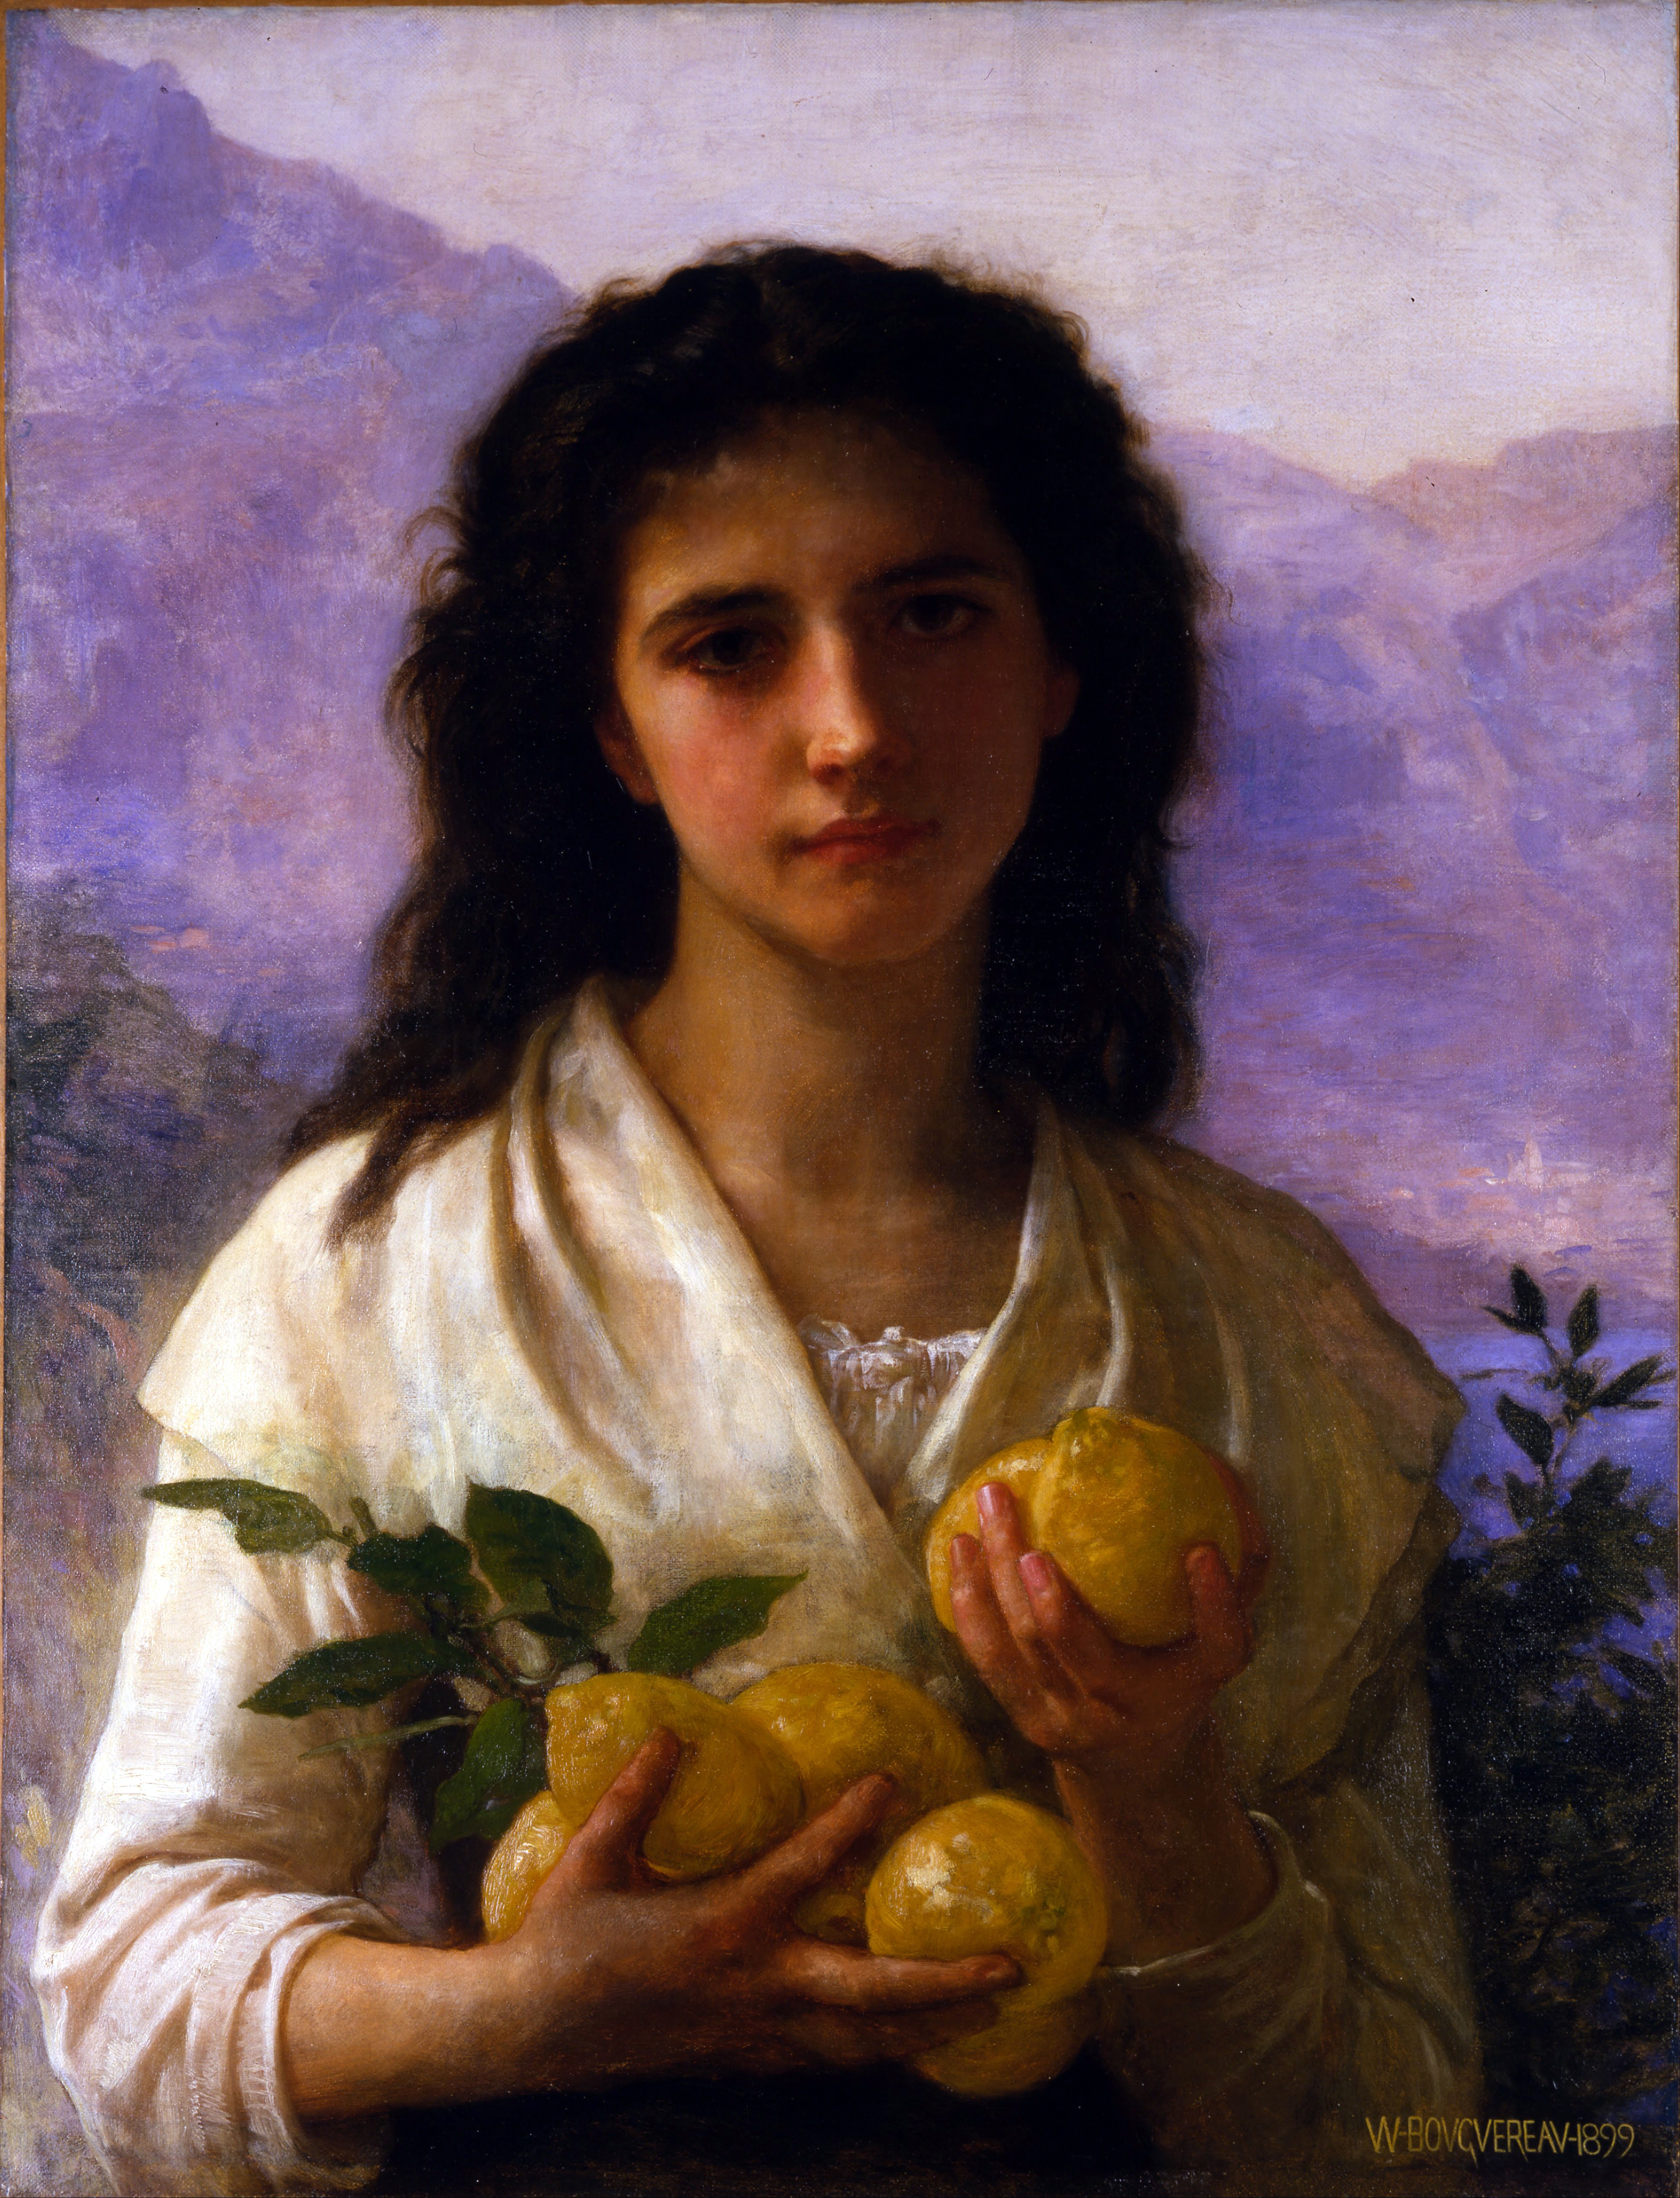 William-Adolphe Bouguereau (1825-1905) - Girl Holding Lemons (1899).